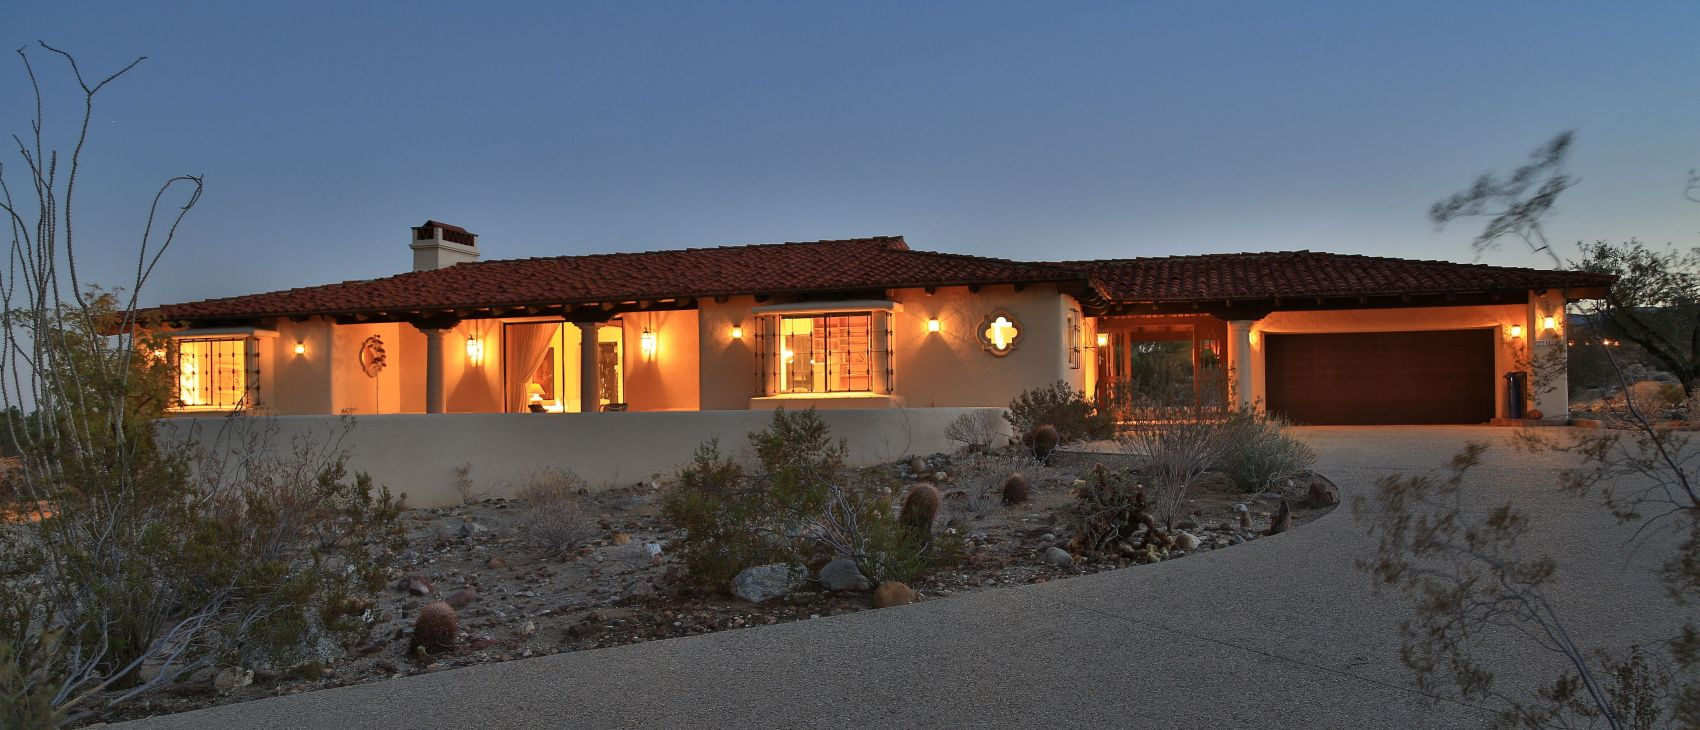 Single Family home in Borrego Springs